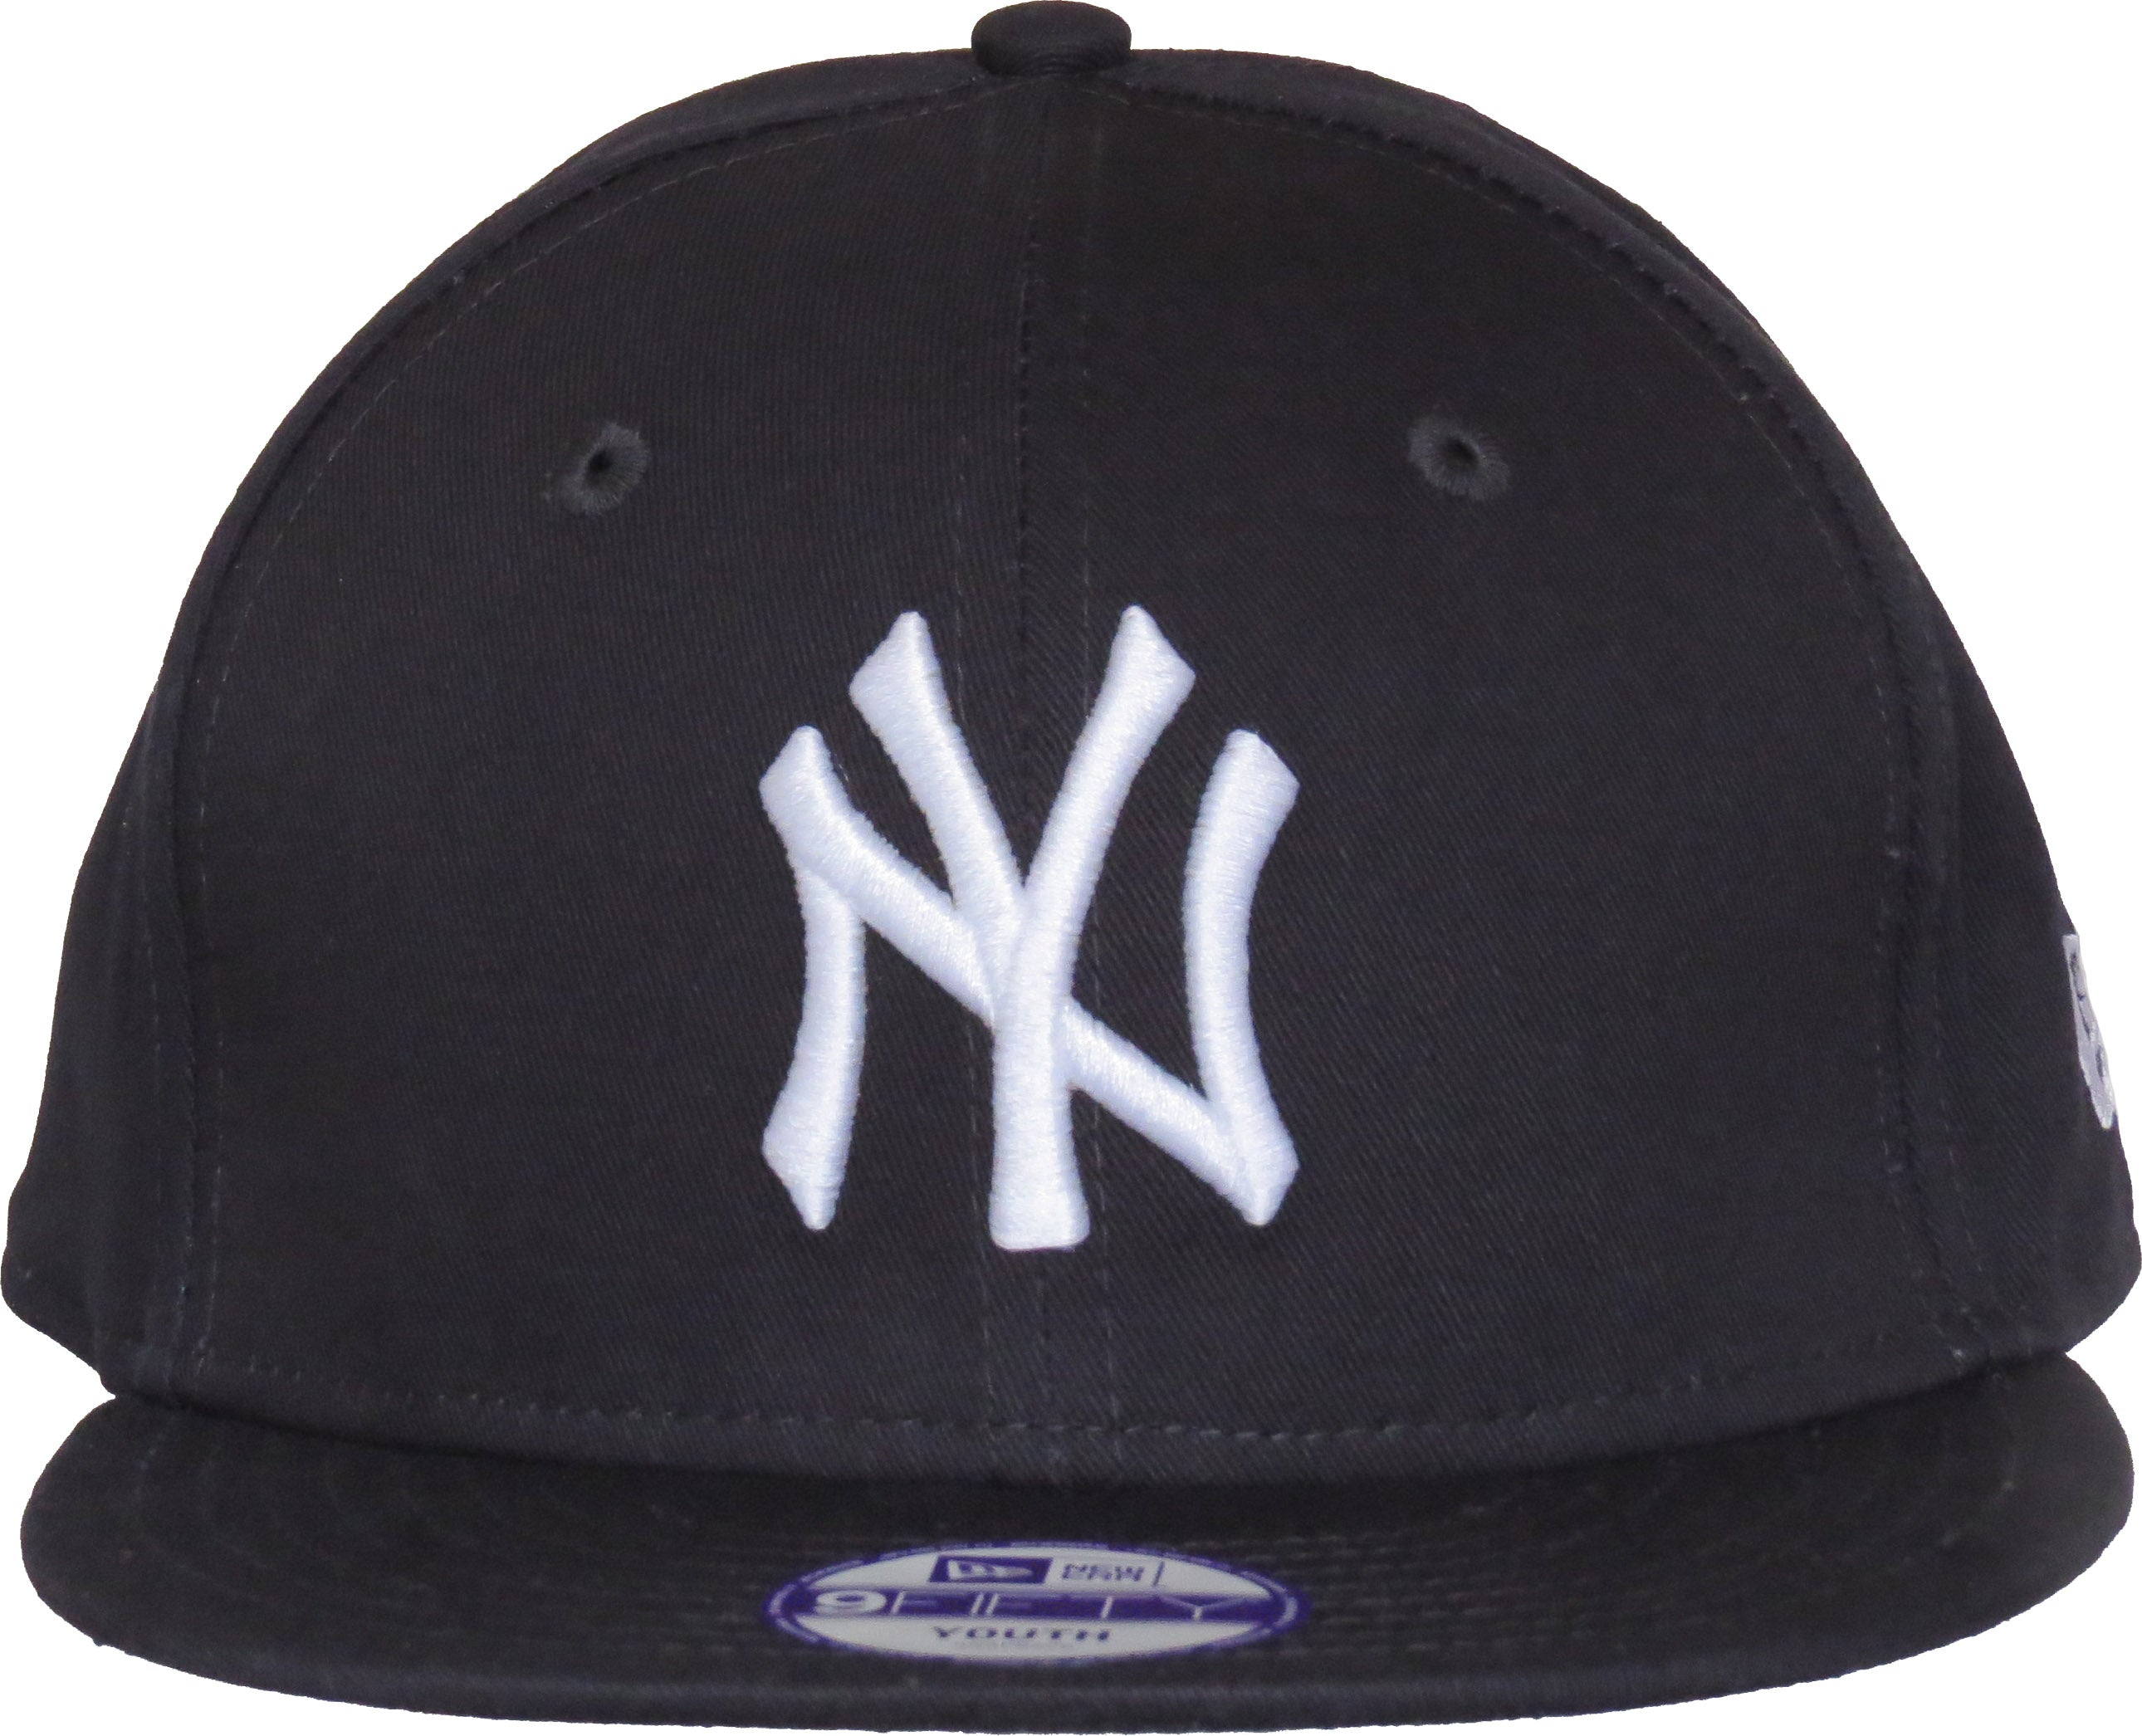 ... coupon for ny yankees new era 950 kids navy snapback cap age 5 10 years  d4c97 ... 901dc2c0ad0